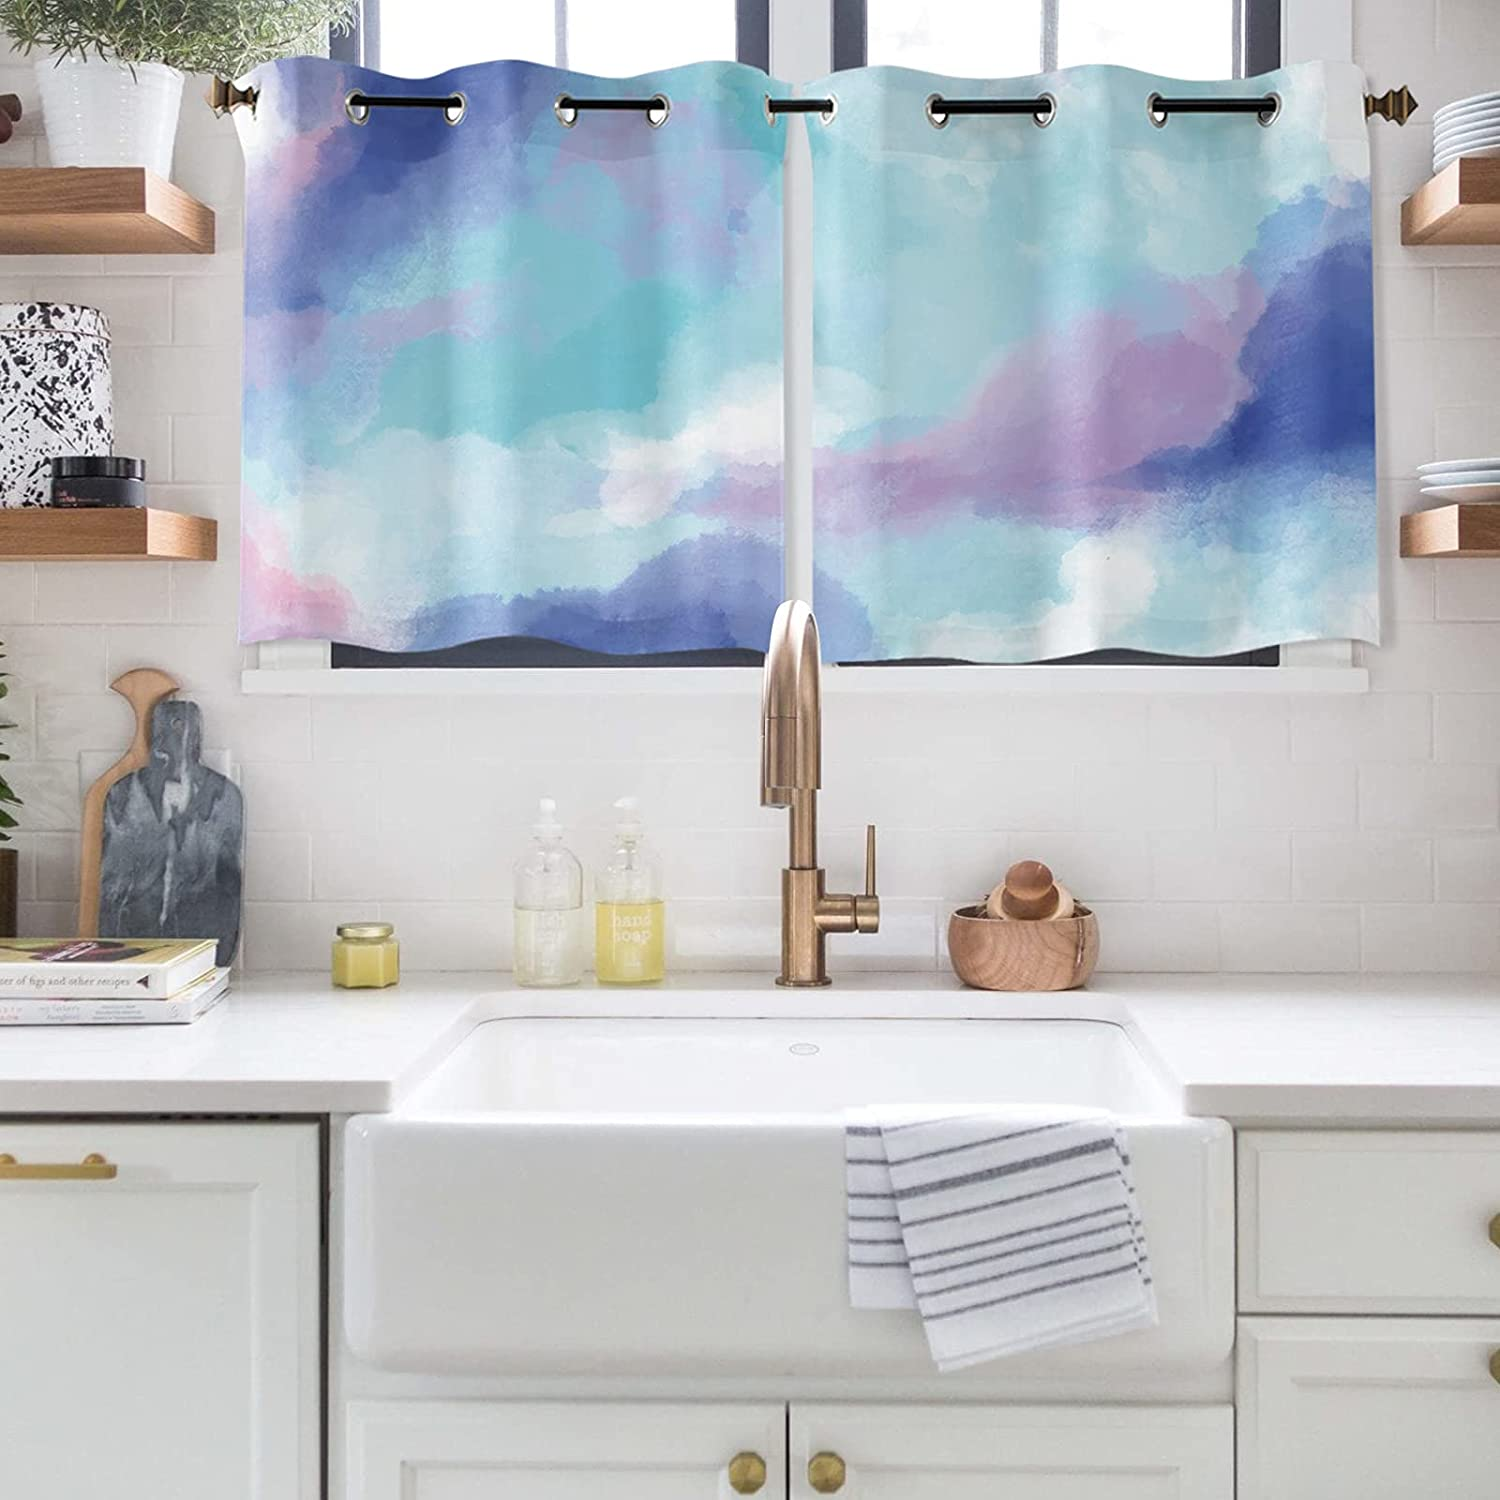 Abstract 55% OFF Art Window Curtains Tucson Mall for Darkeni Room Bedroom Polyester